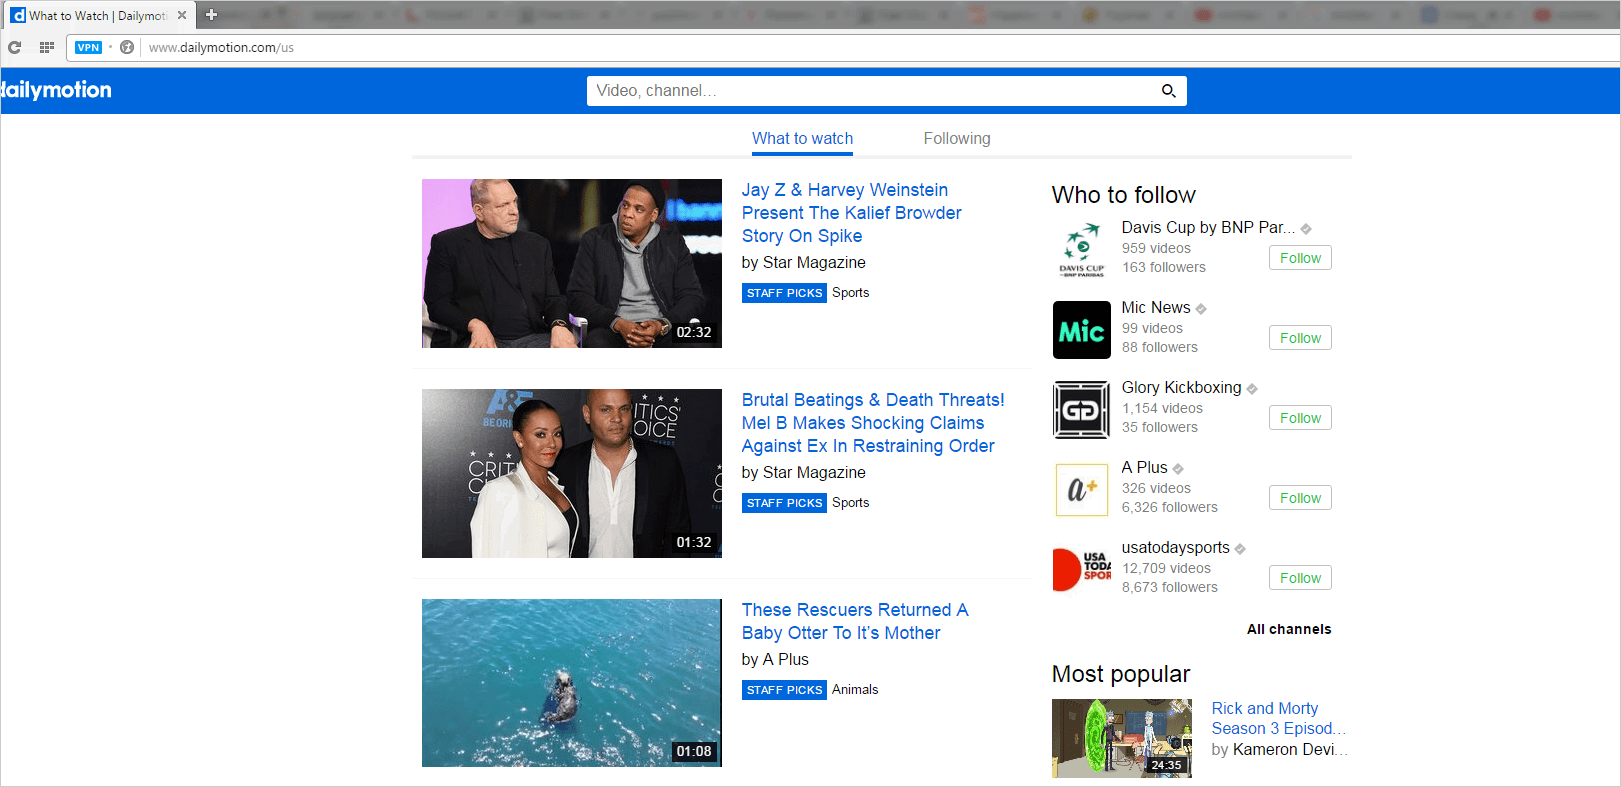 FAQ  GetVideo.at - How to download a video from Dailymotion